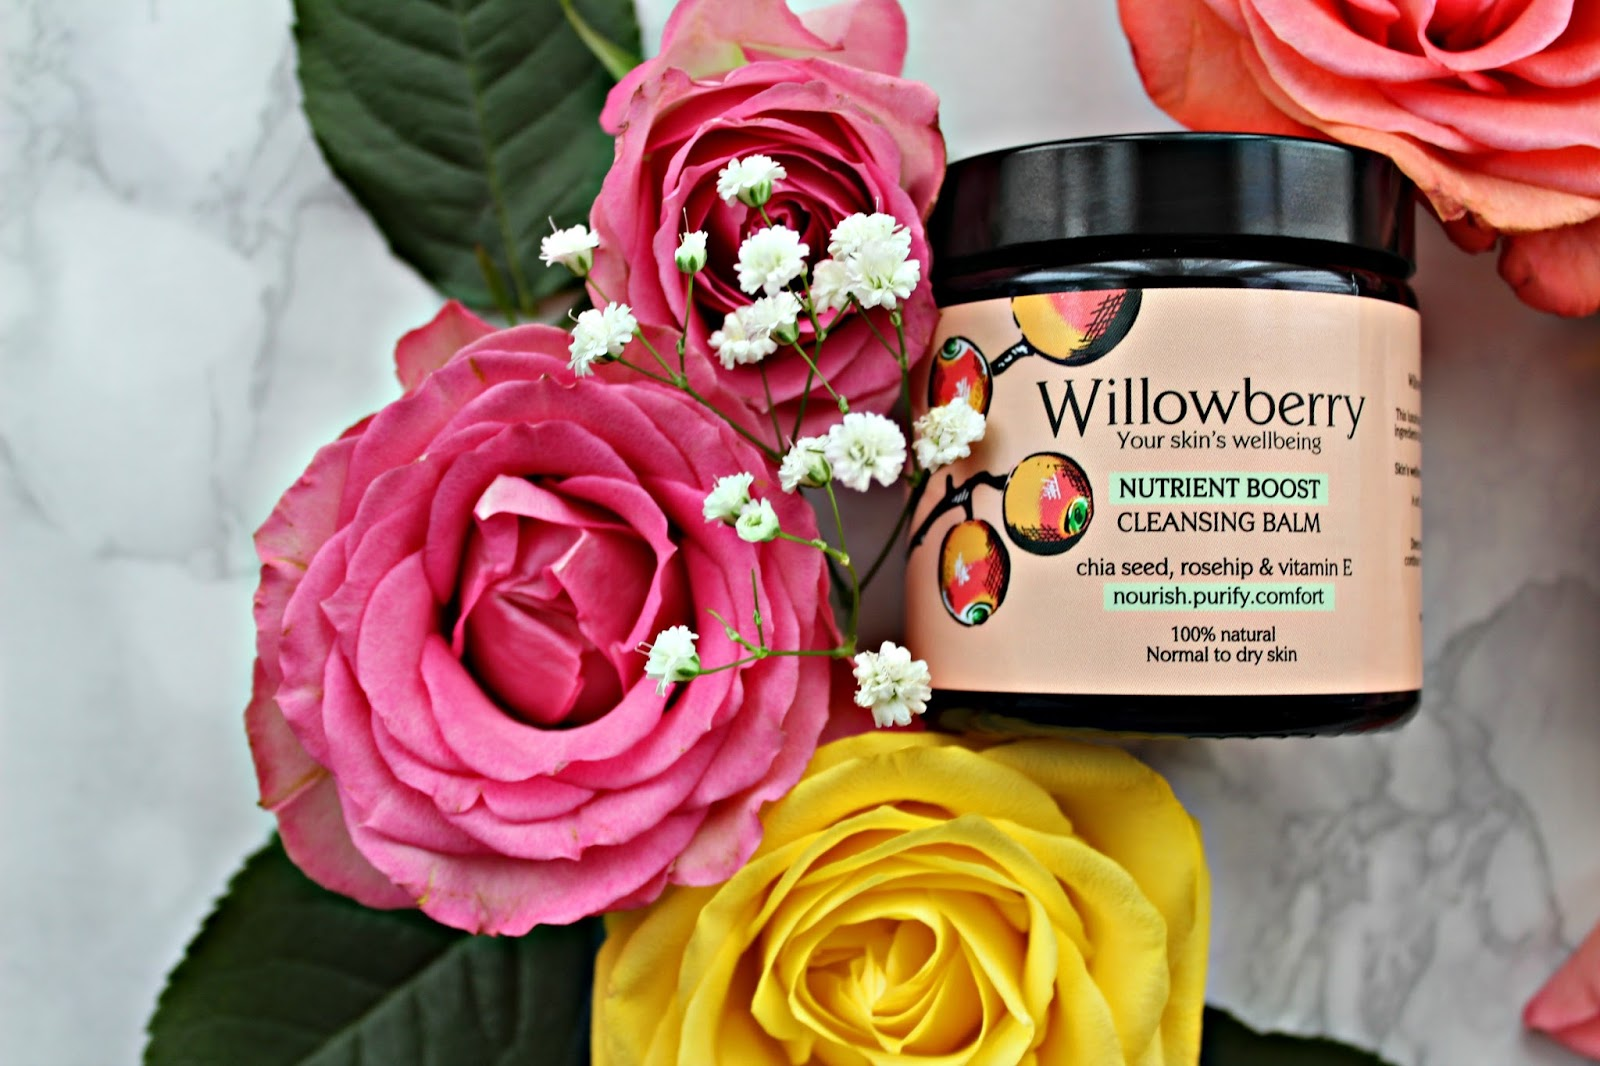 New in: Willowberry Skincare